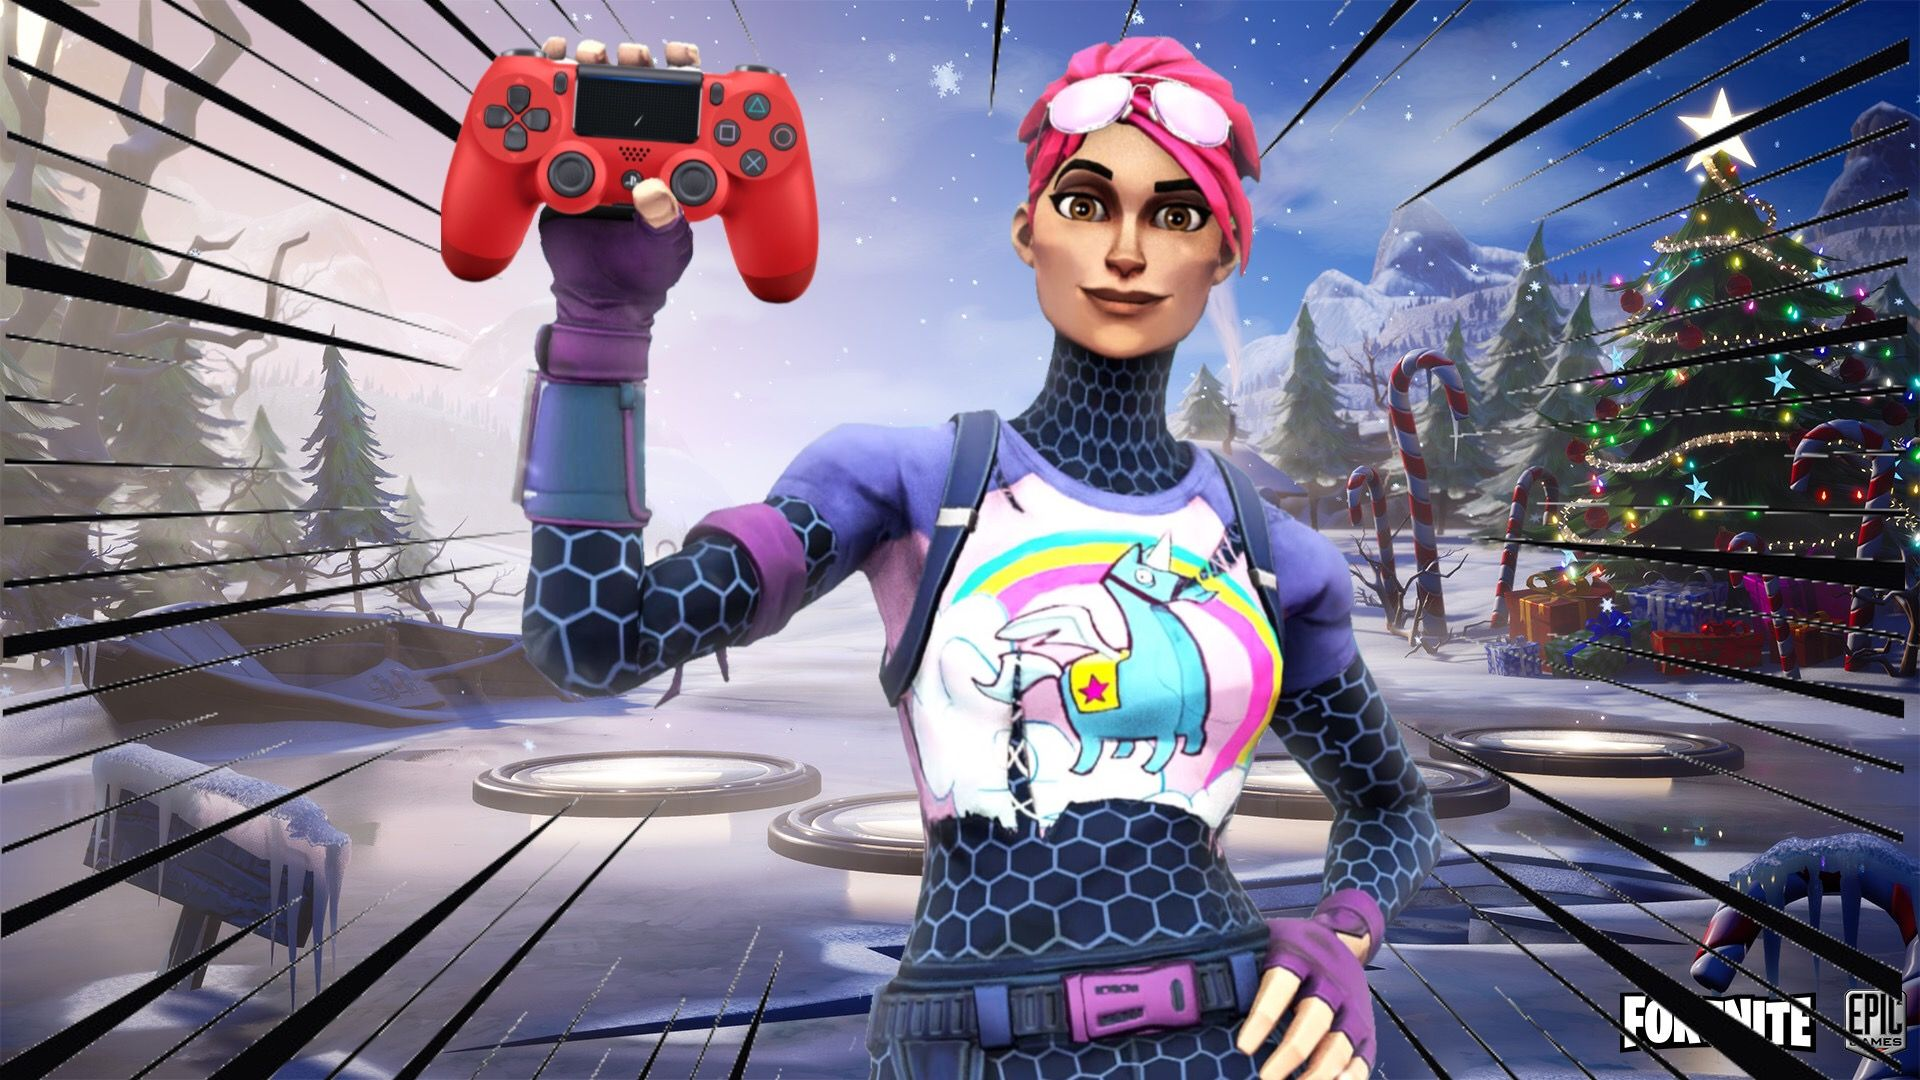 Freetoedit Ps4 Fortnite Thumbnail Remixed From Sxtch Video Games Ps4 Gaming Wallpapers Best Gaming Wallpapers